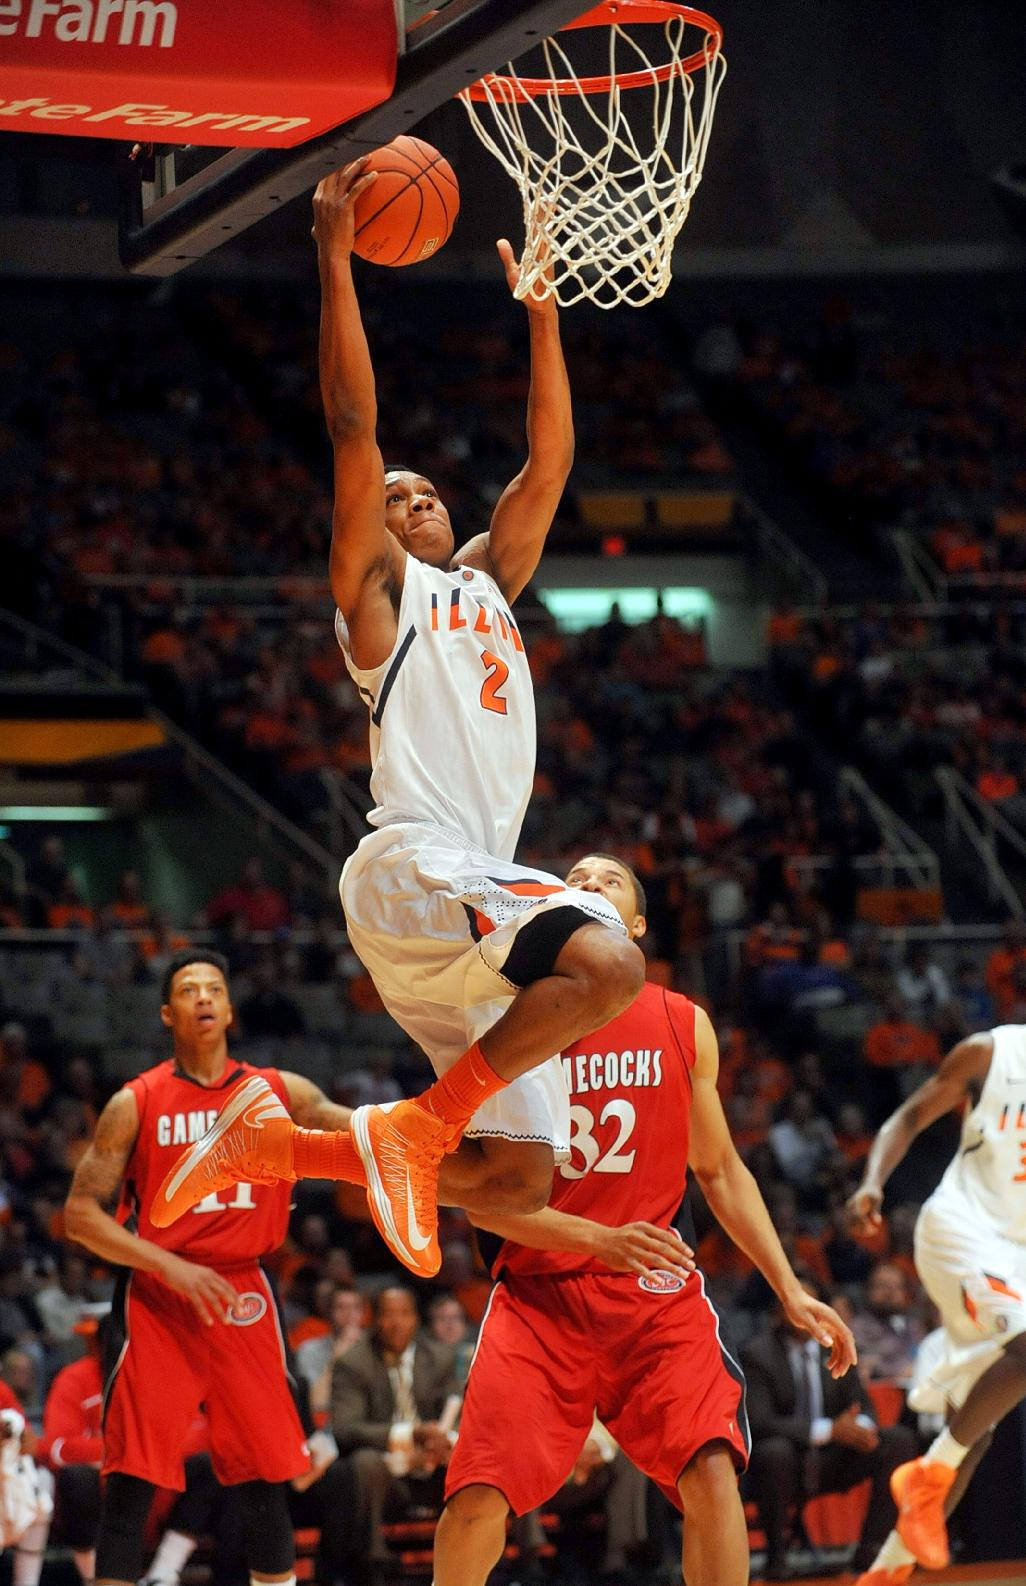 Illinois guard Joseph Bertrand (2) drives past Jacksonville State's Jamal Hunter (32) during the first half of an NCAA college basketball game Sunday, Nov. 10, 2013, in Champaign, Ill